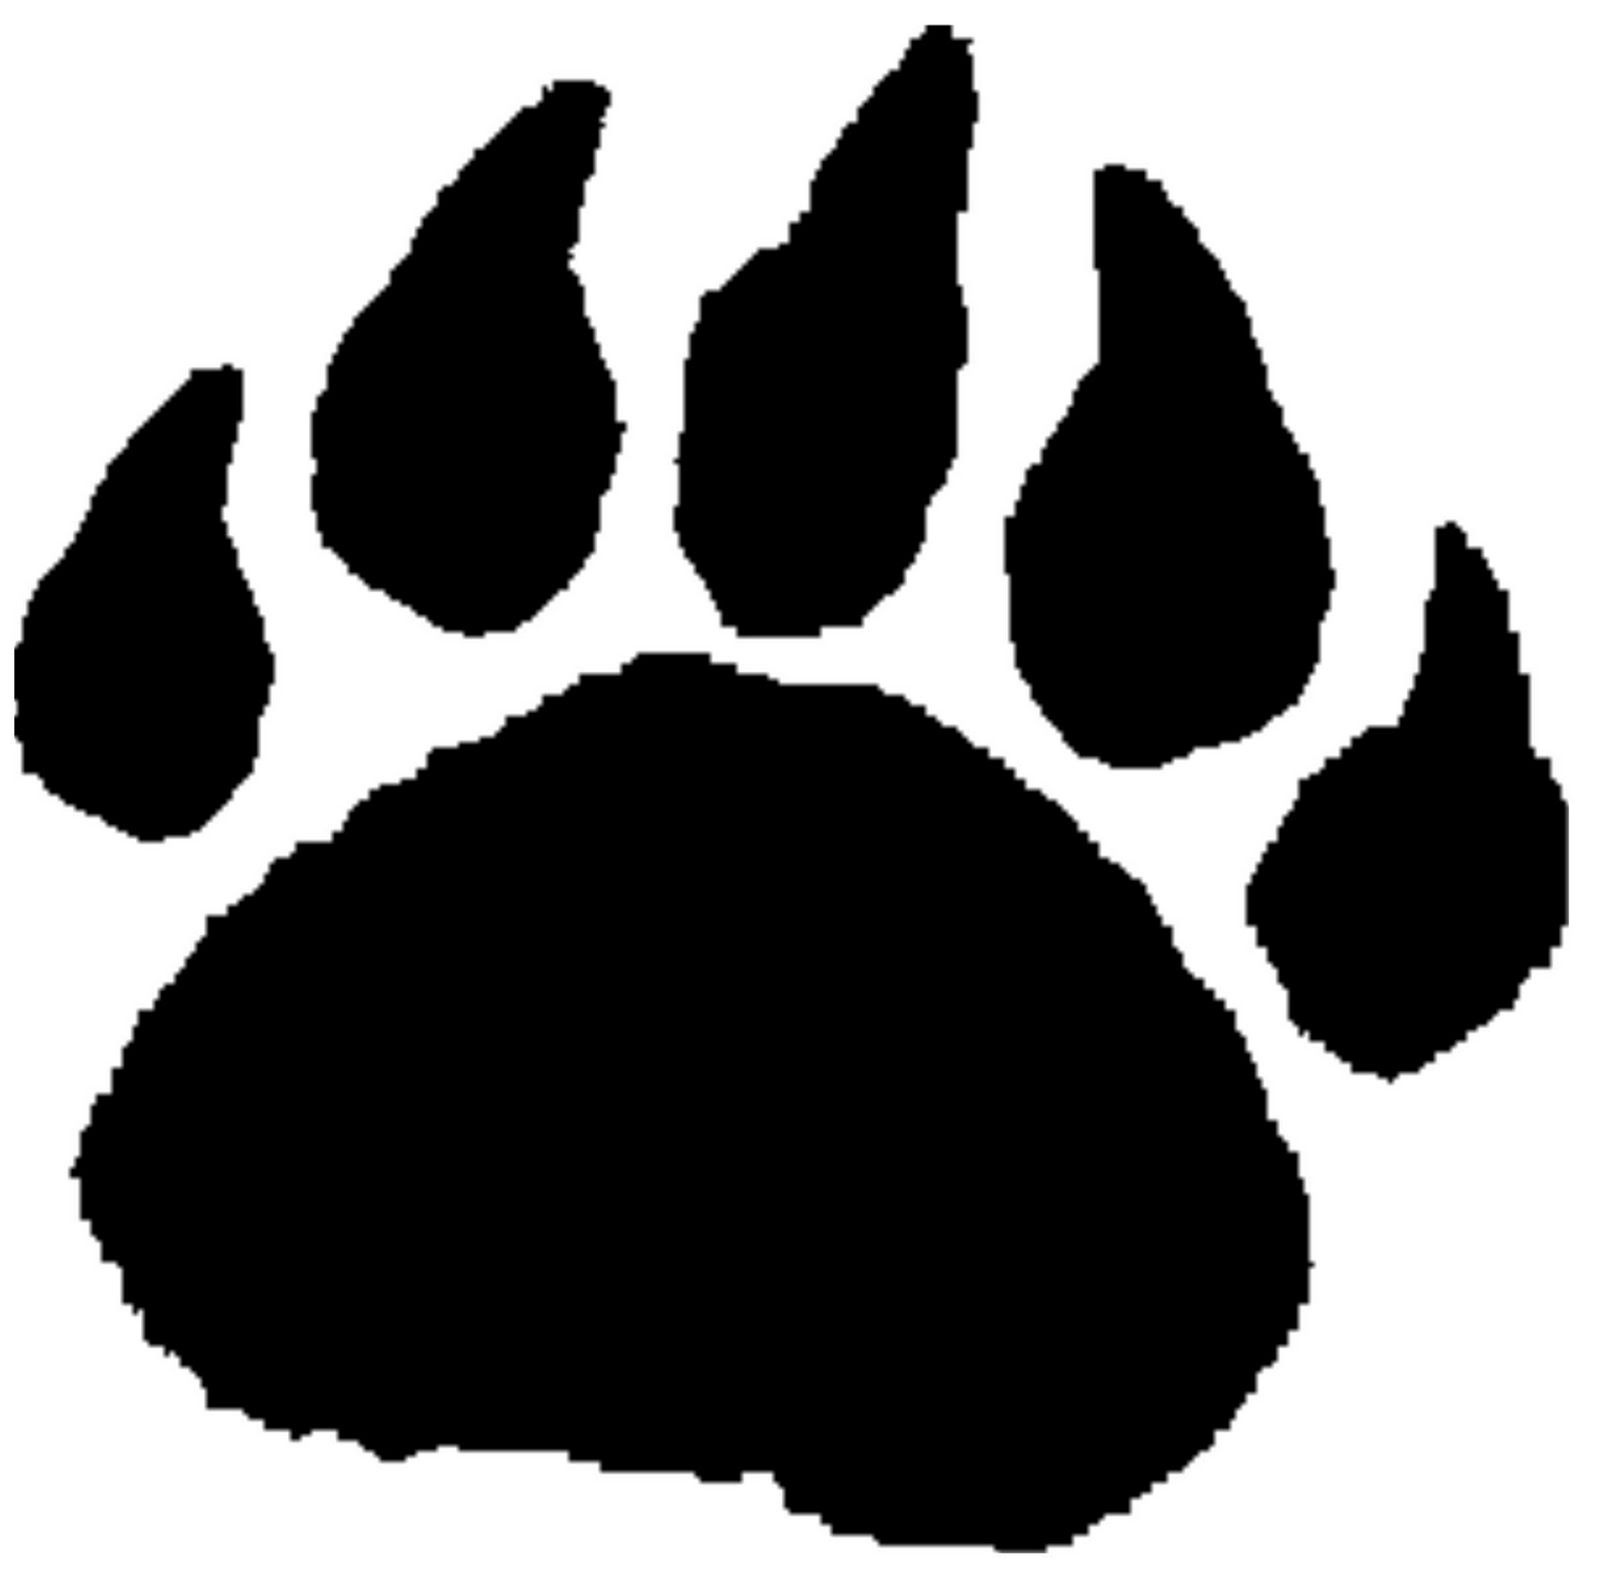 bear paw outline clipart best clipart best tattoo and rh pinterest com bear claw clipart bear claw clipart